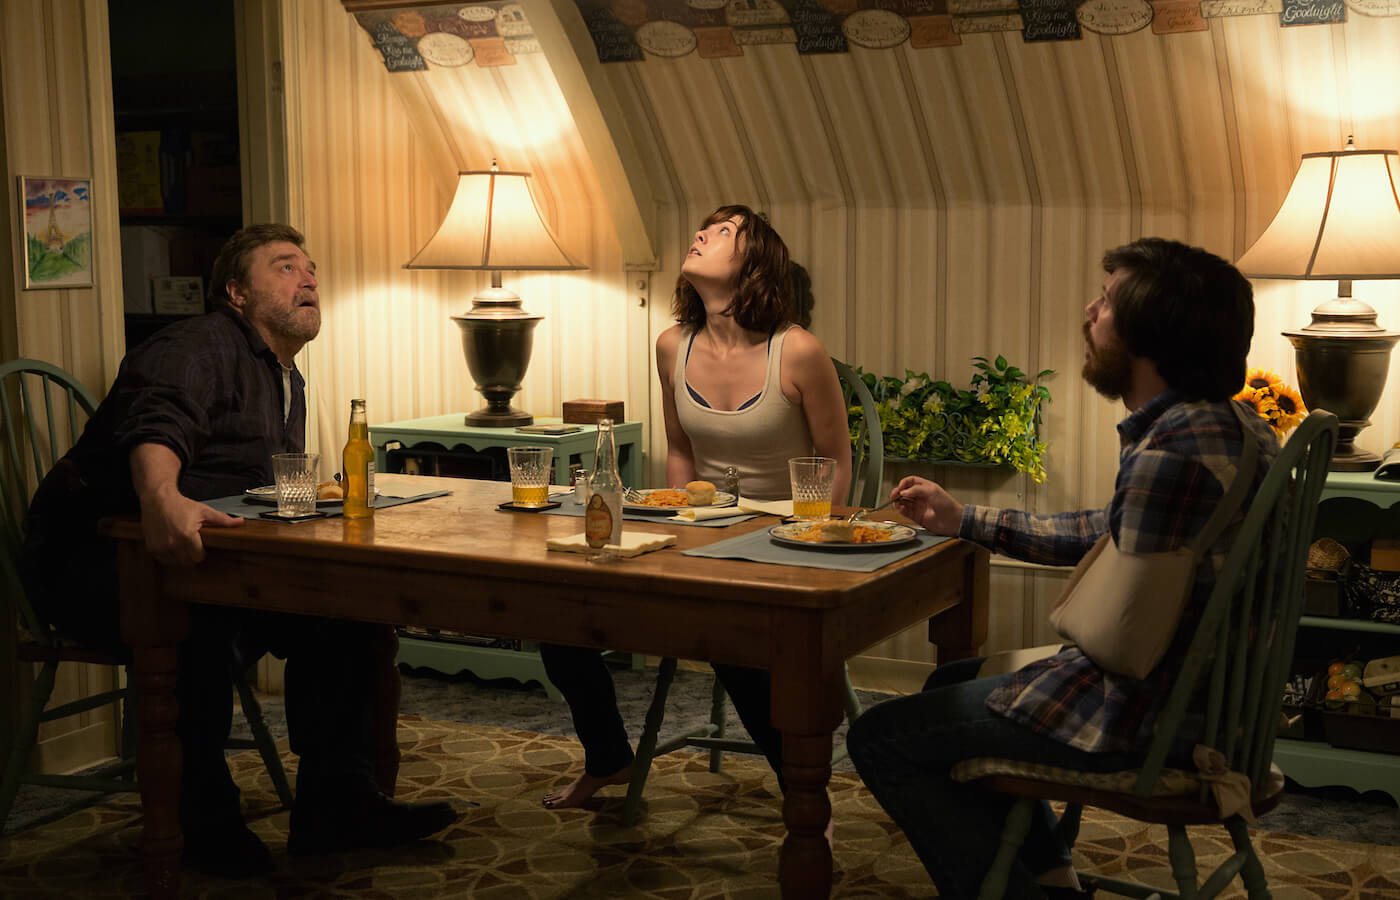 10 cloverfield lane john goodman mary elizabeth winstead john gallagher jr